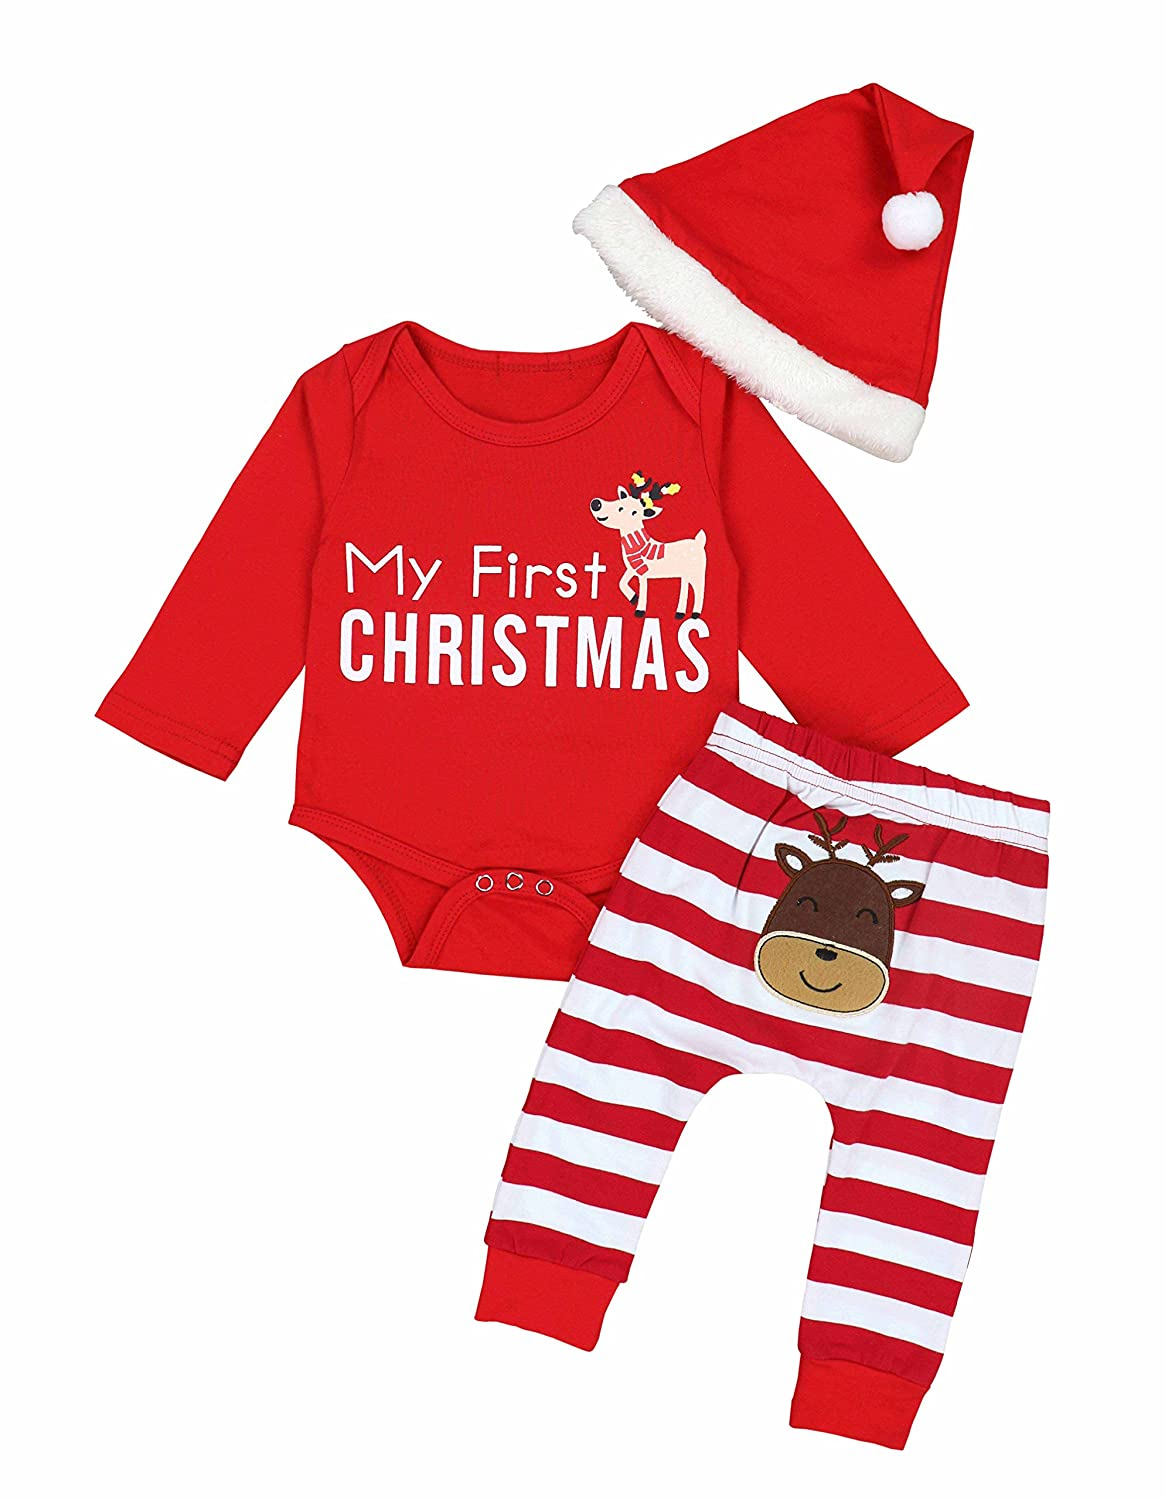 Doding Christmas Outfits Baby Boys Girls My First Christmas Rompers With Xmas Hat Clothes Set